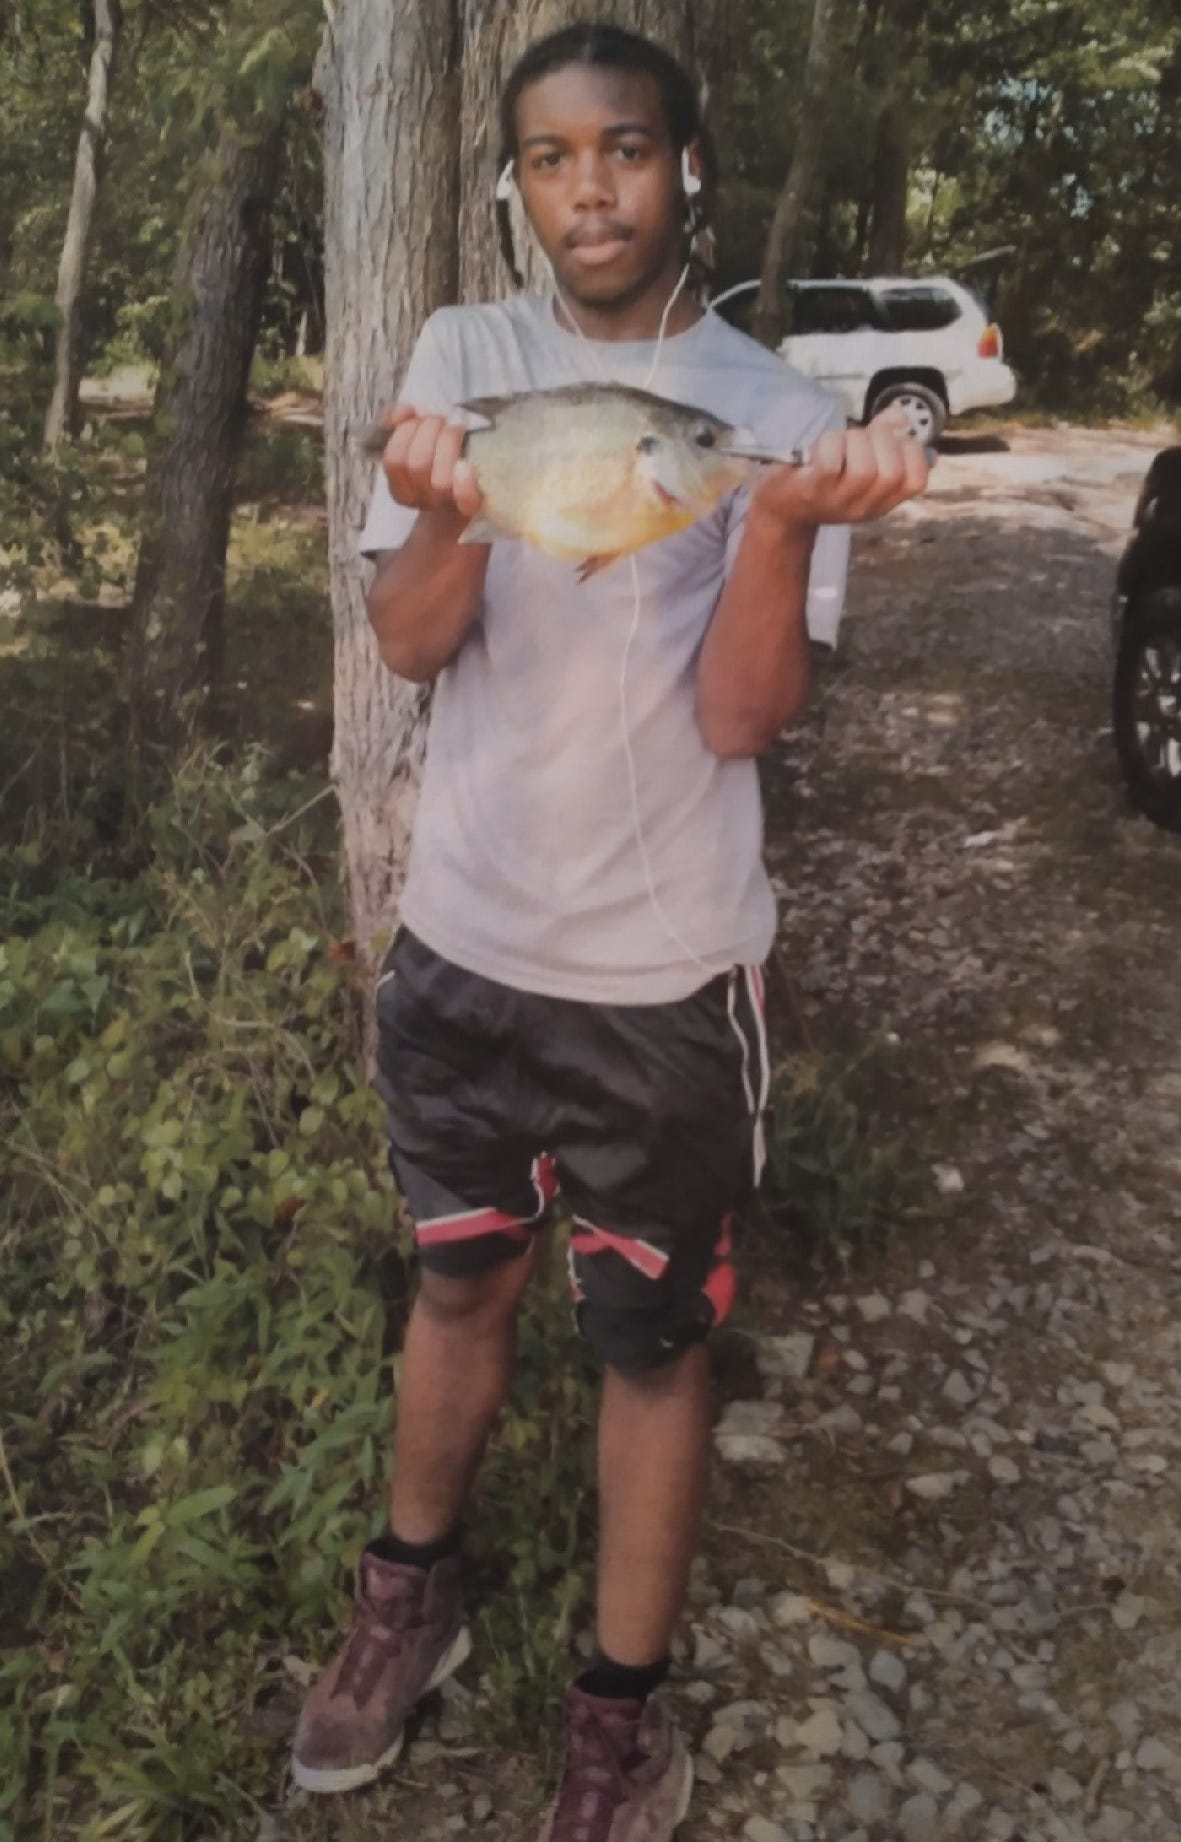 Lamaurie Gathings, 17, pictured during a 2020 fishing trip with his father, was shot and killed on June 4, 2021.